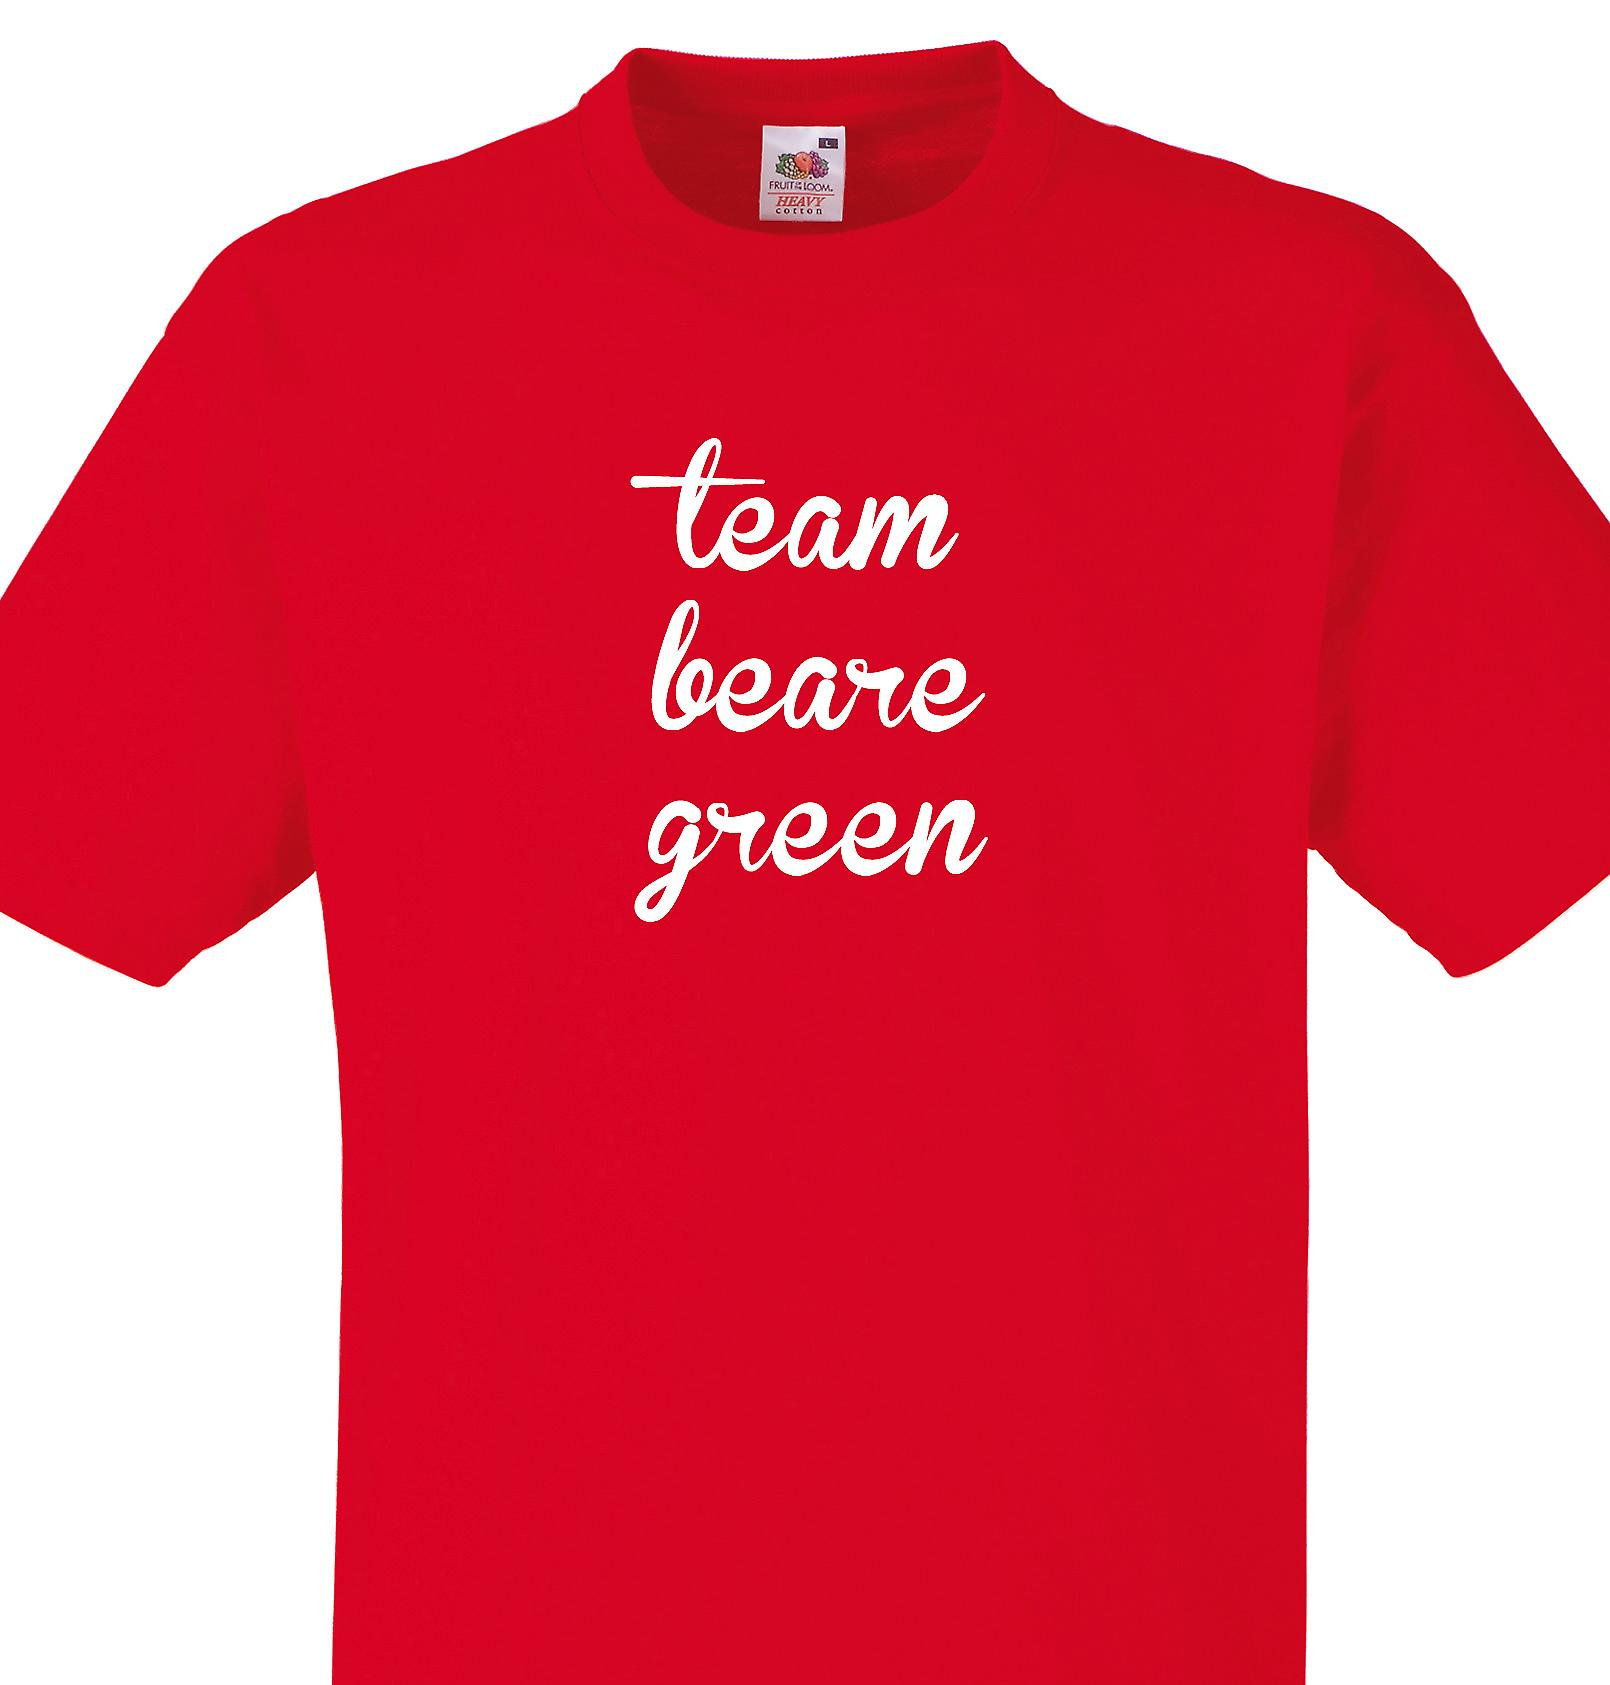 Team Beare green Red T shirt